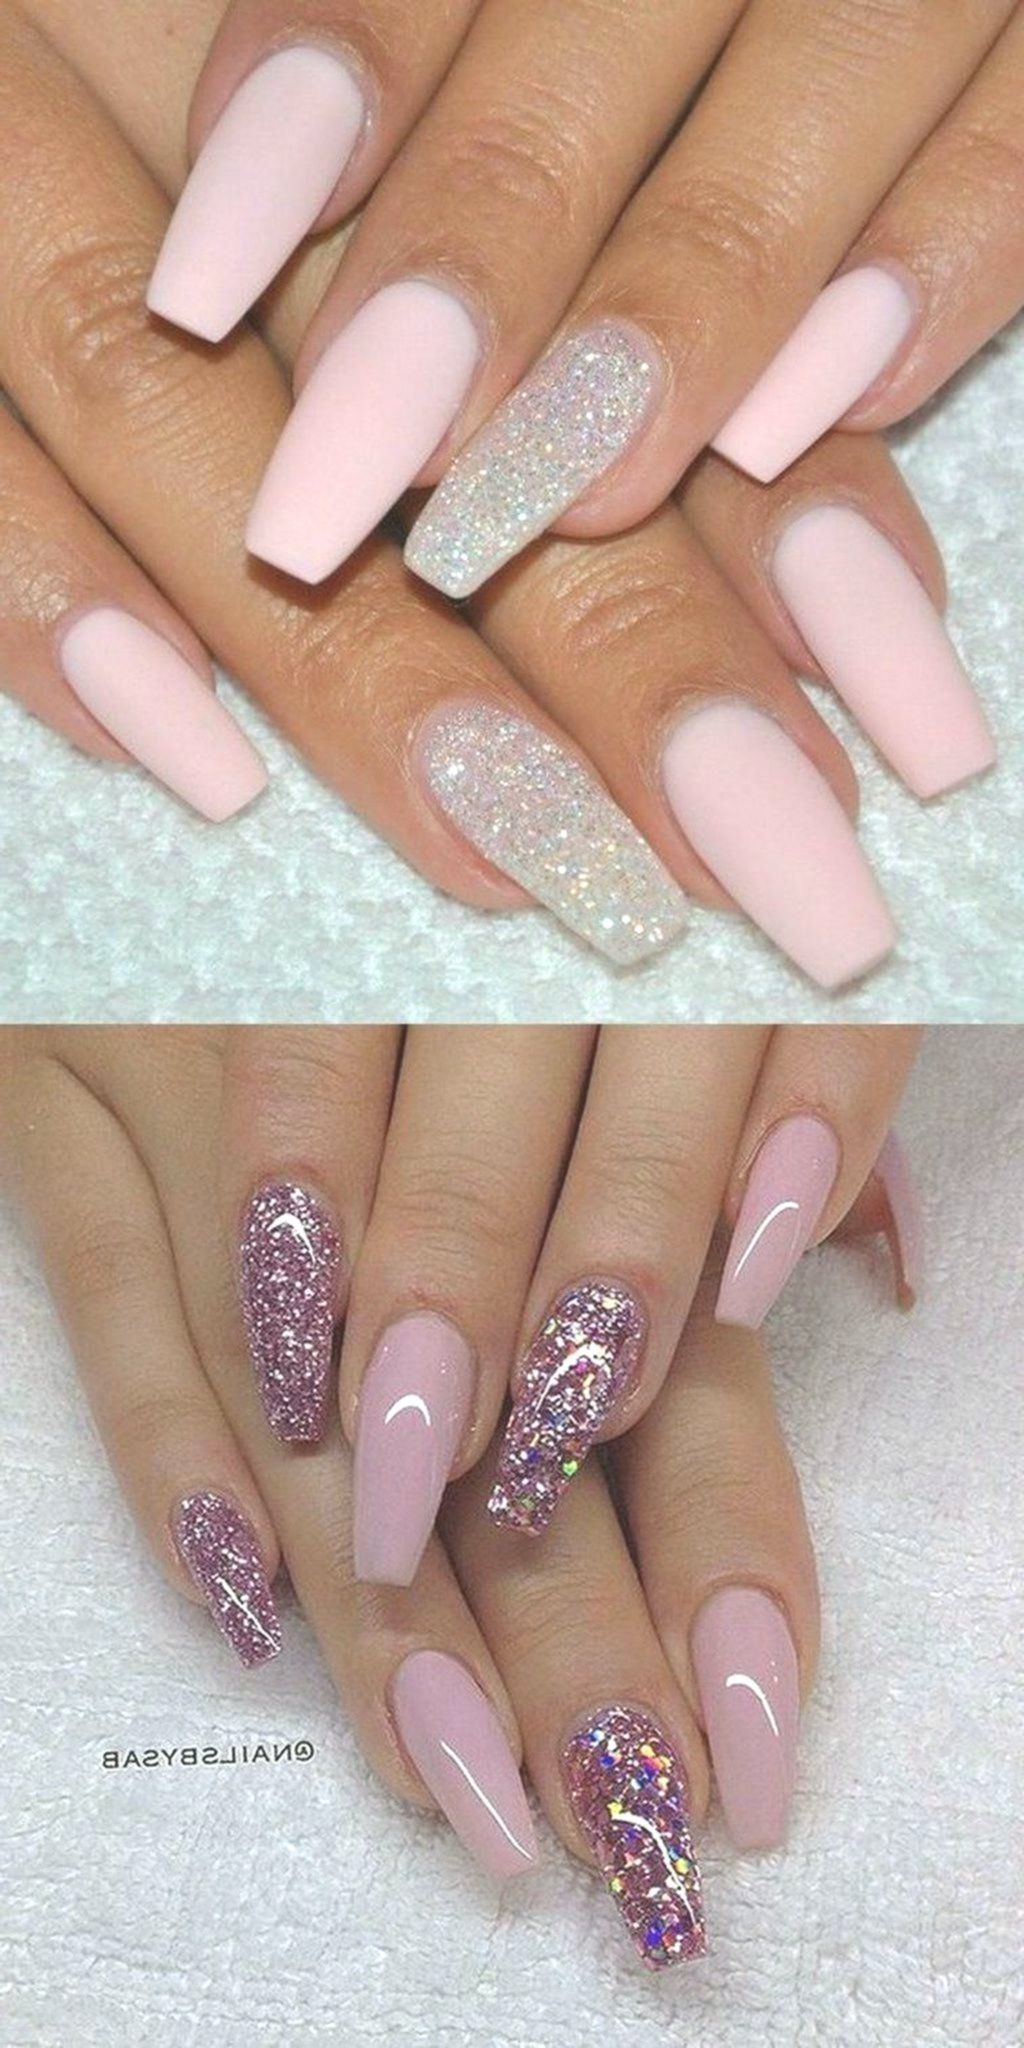 Acrylic Nails Designs Valentines Day Beautiful Provocative And Long Nails Are The Dream Of Many Wom Sparkly Nails Sparkly Nail Designs Pretty Nail Art Designs